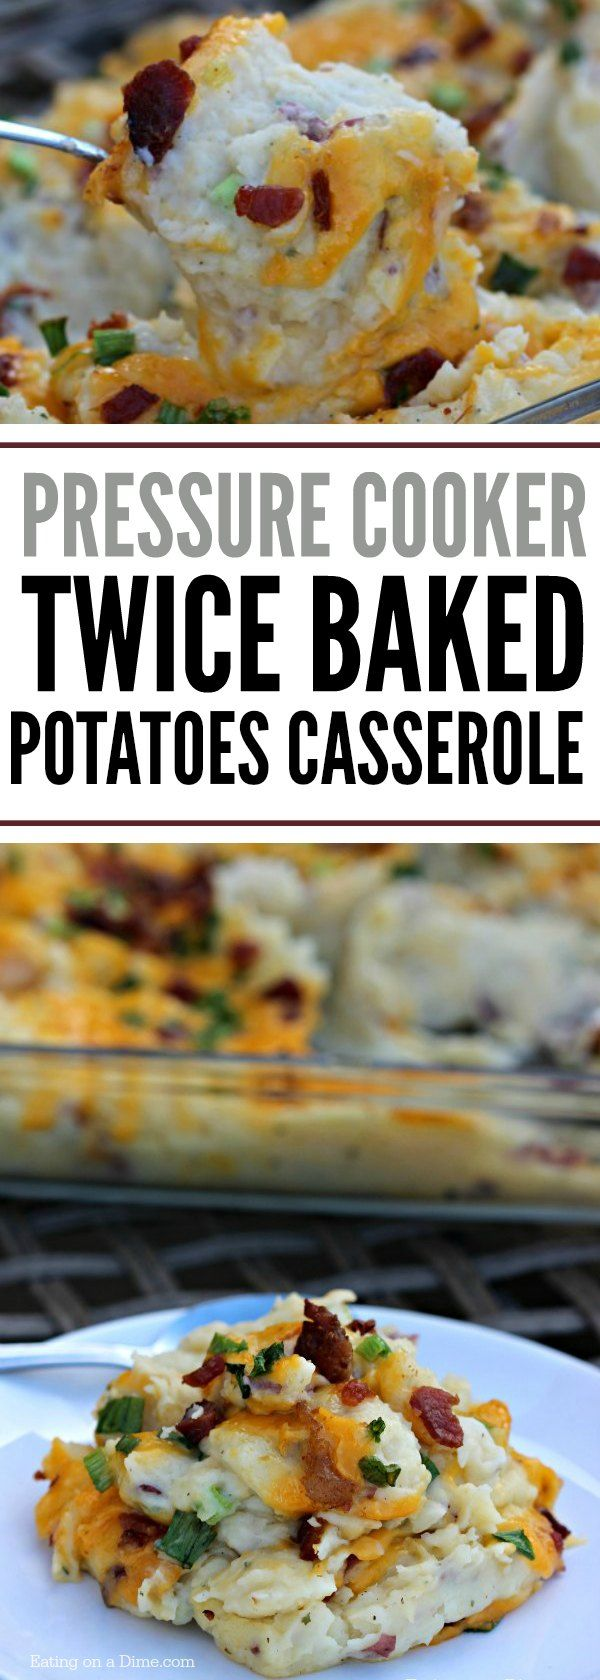 This Instant Pot Twice Baked Potatoes Casserole Recipe is amazing! It is one of our new favorite pressure cooker recipes because it saves so much time! You get all the flavor of twice baked potatoes without all the work!